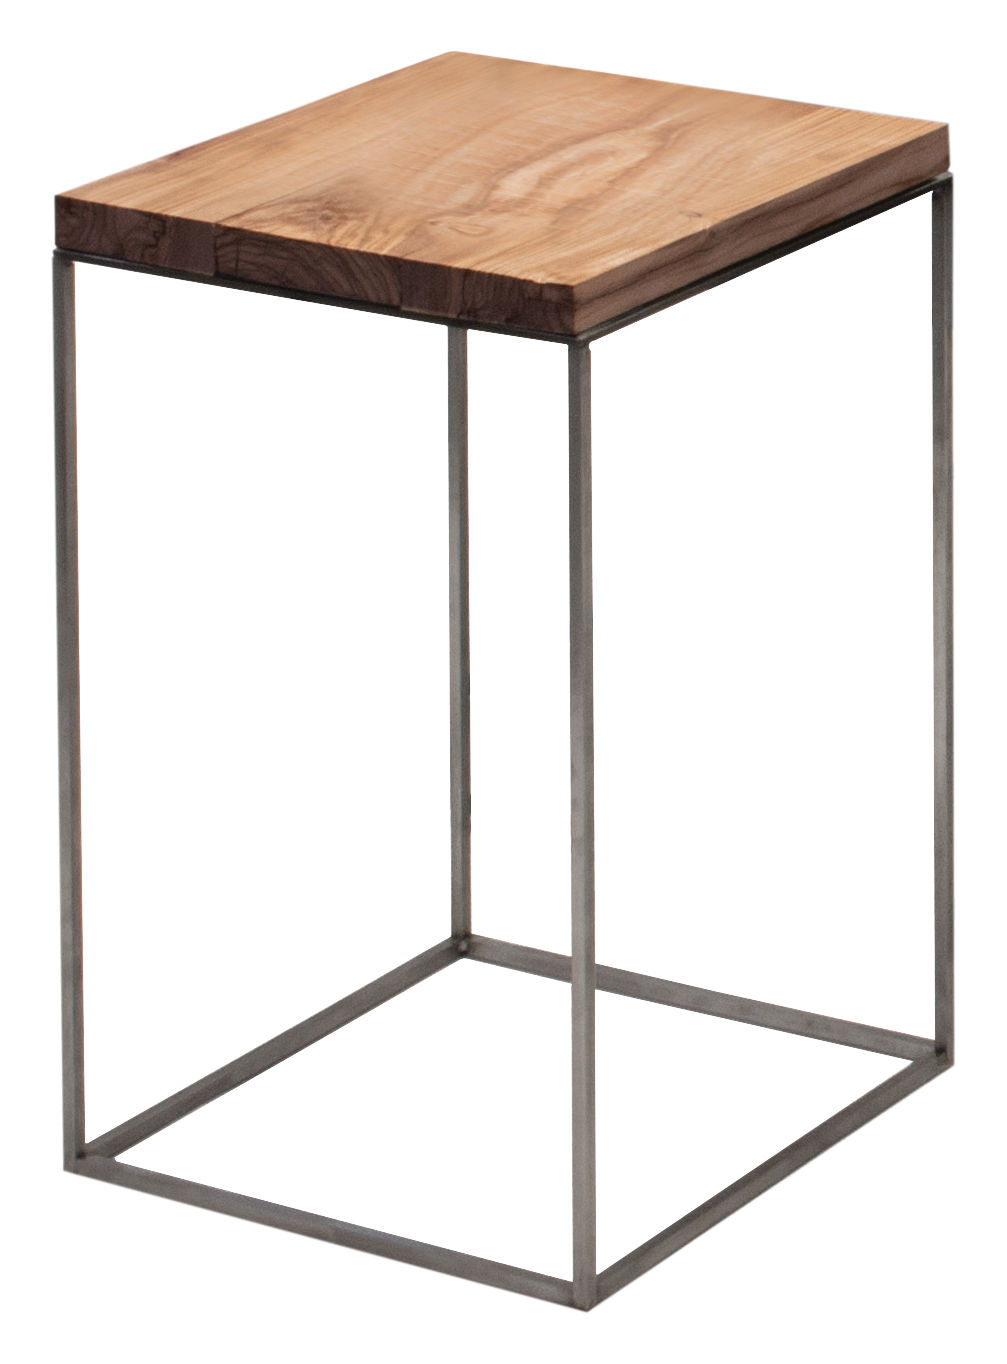 Furniture - Coffee Tables - Slim Irony Coffee table by Zeus - Natural wood -  Bois de cèdre, Steel